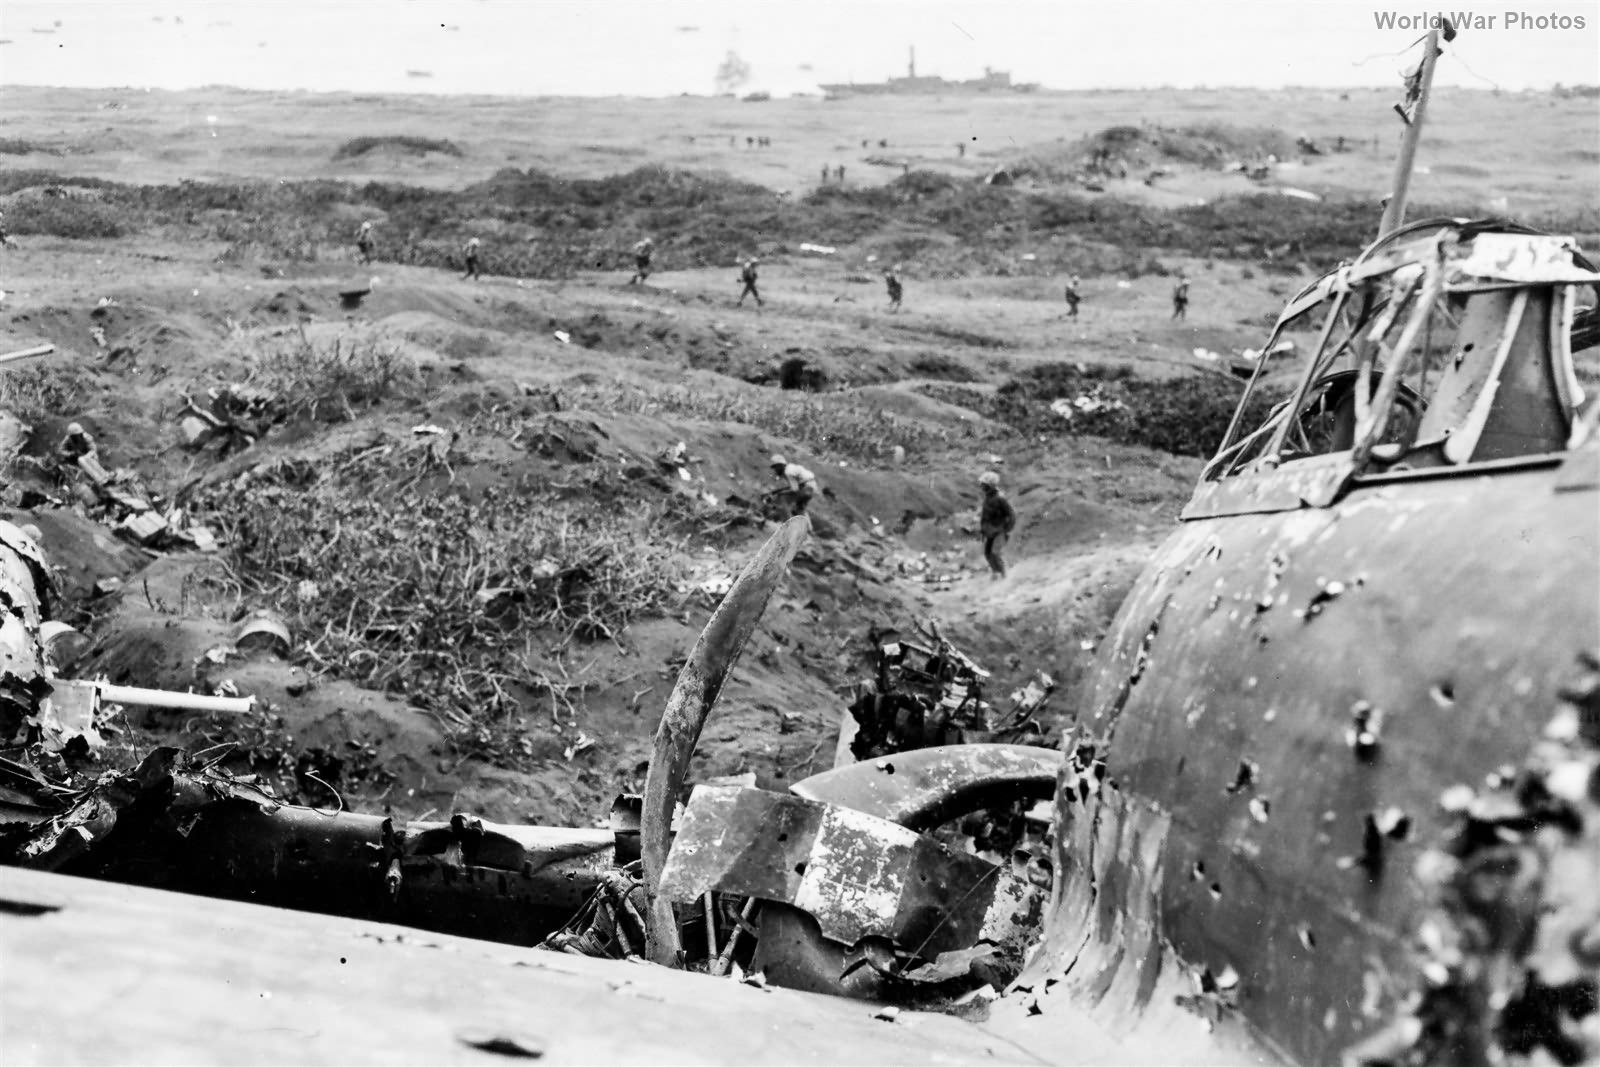 23rd Marines clear pillbox by wrecked A6M5